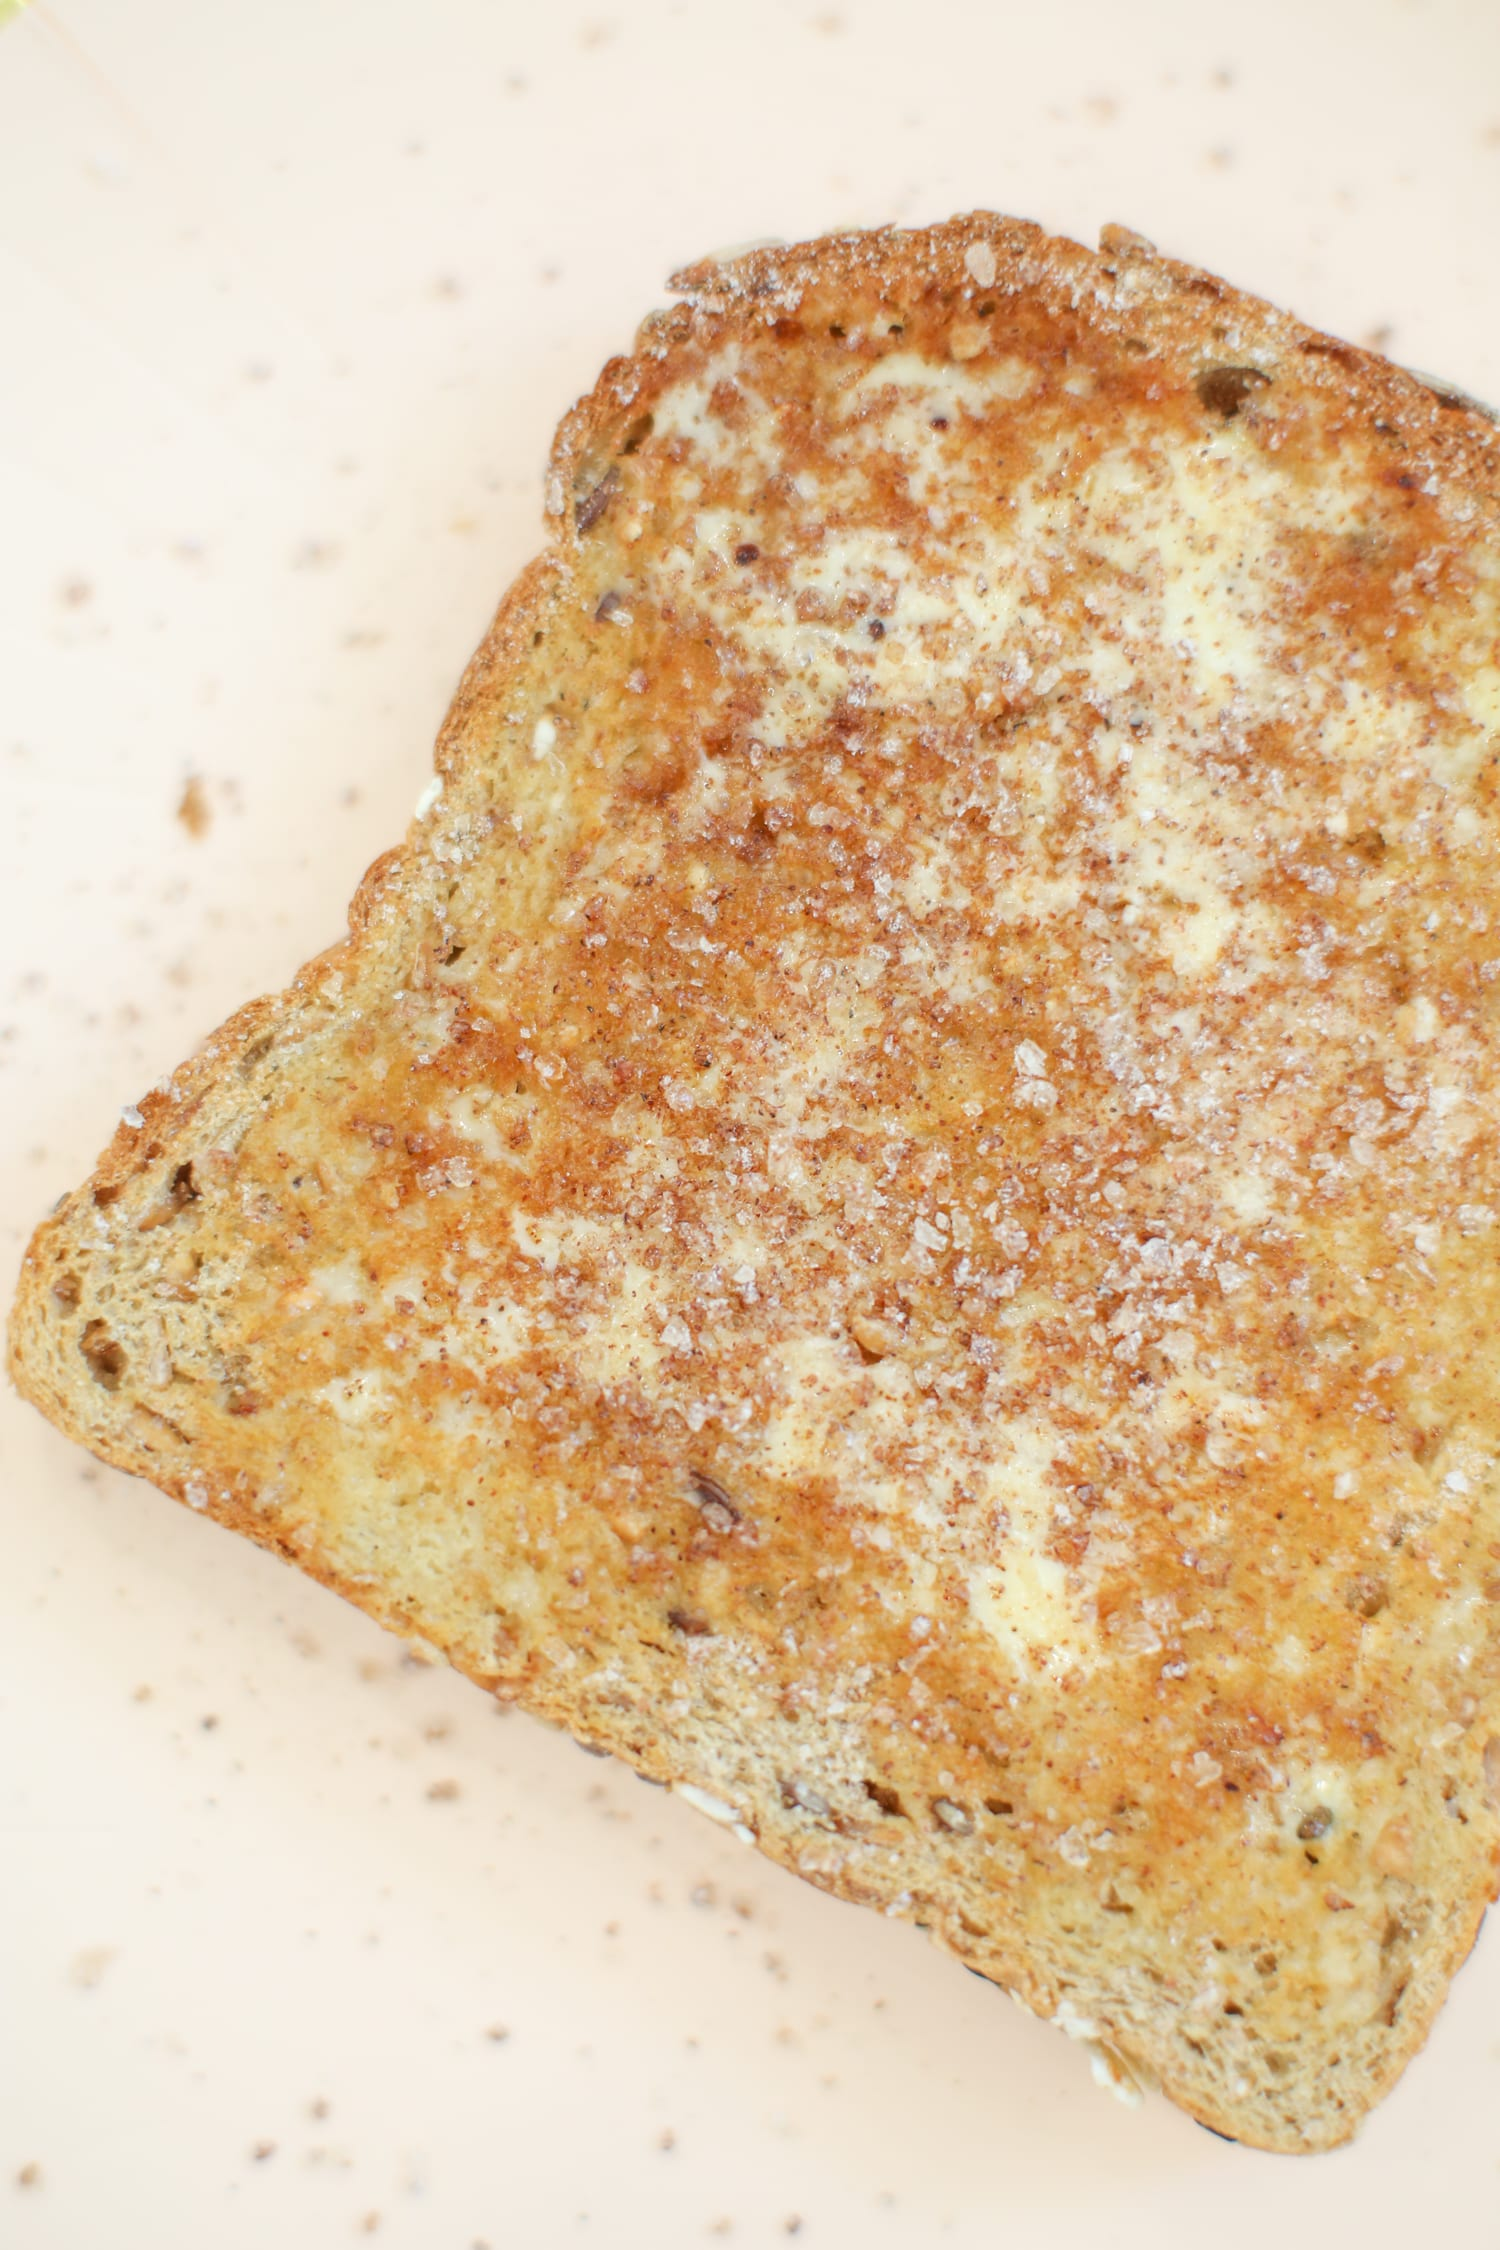 How to make cinnamon sugar crystals for the ultimate cinnamon toast